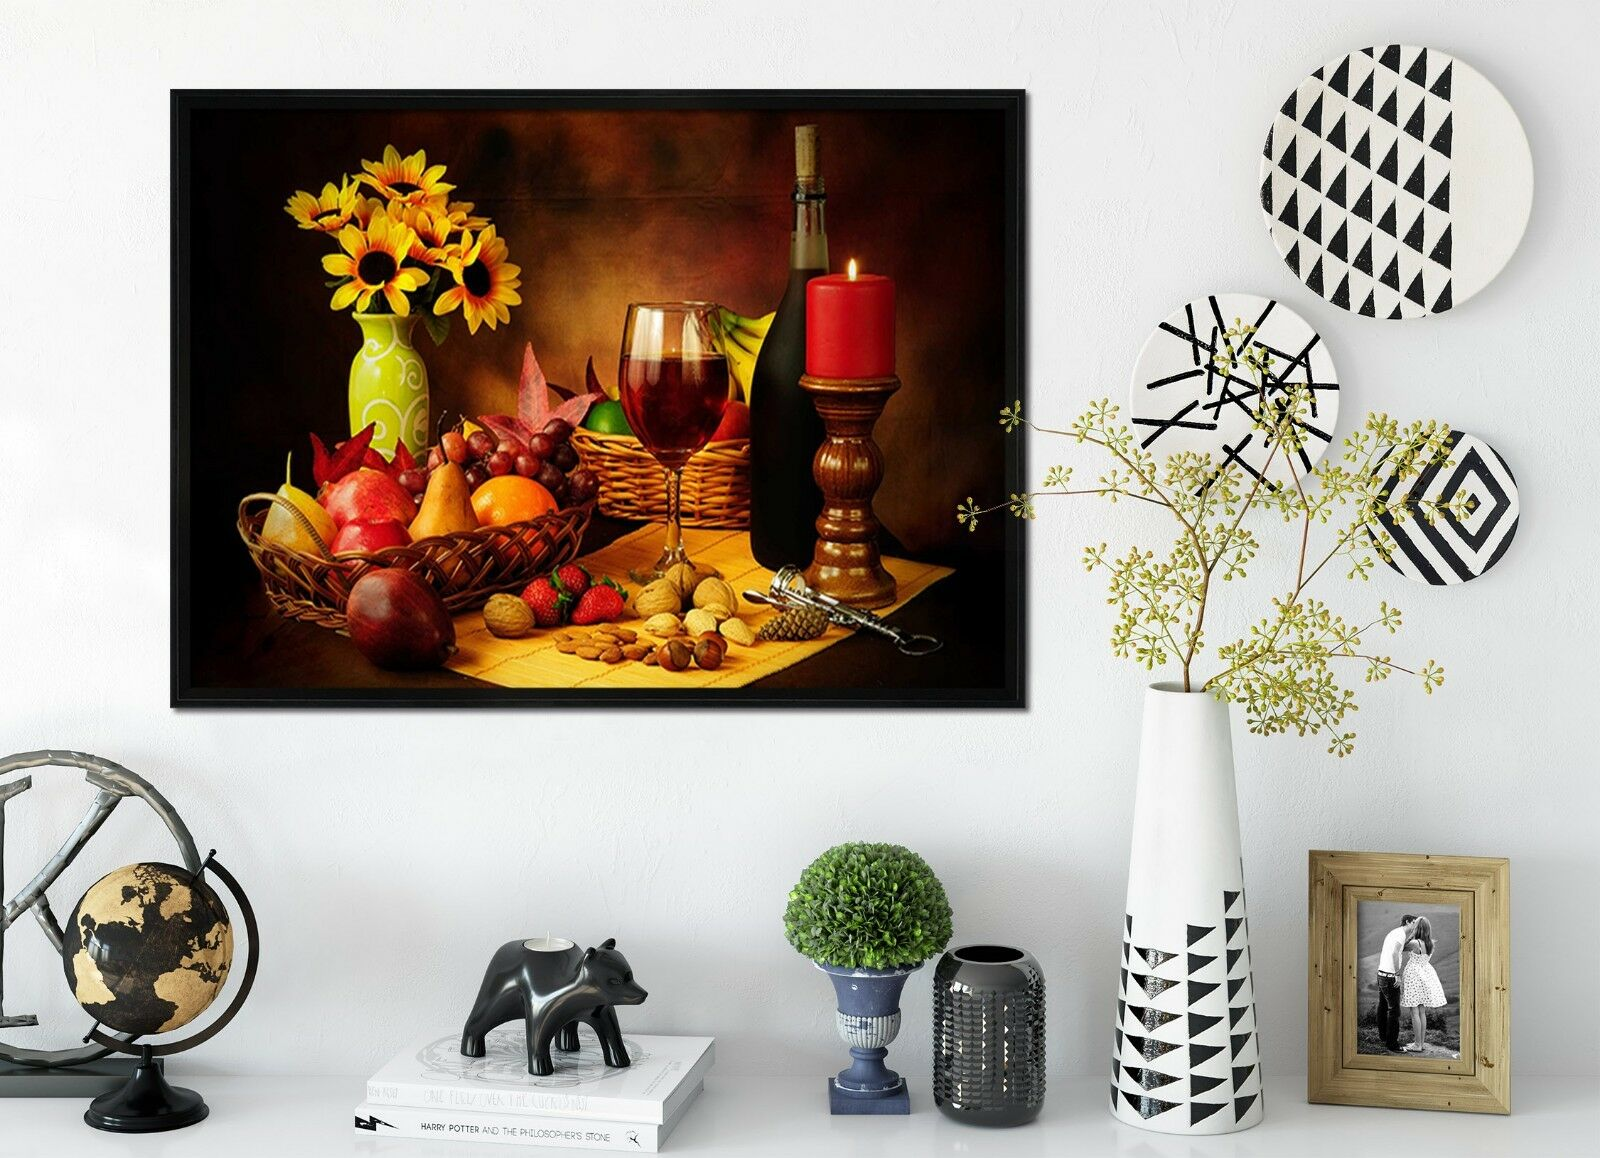 3D Candlelight Red Wine 2 Framed Poster Home Decor Print Painting Art WALLPAPER